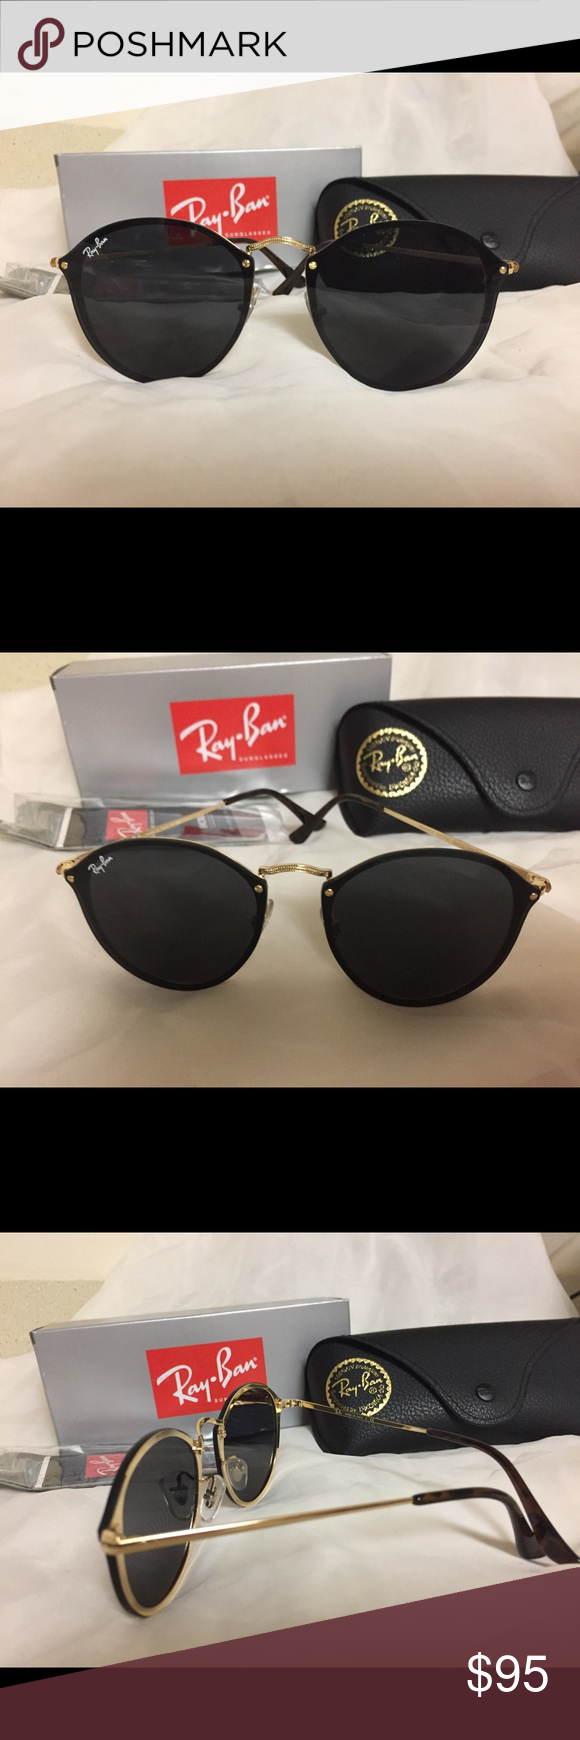 93605fac56669 Ray Ban Blaze Round 💯 % Authentic and brand new blaze round lenses. Model